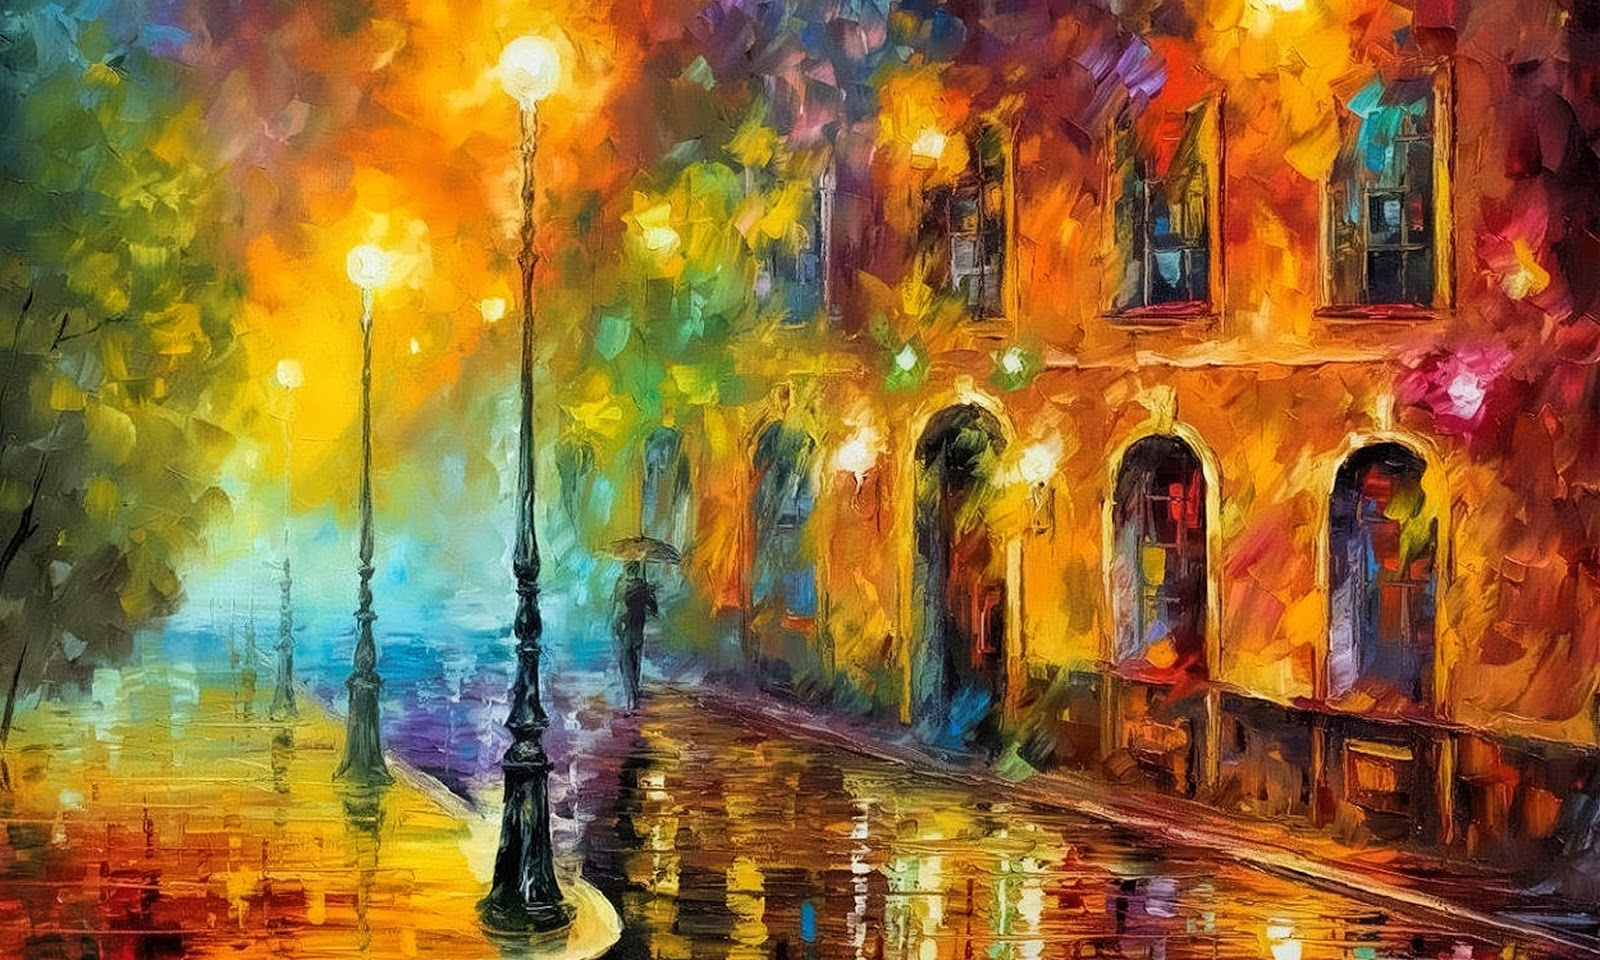 Abstract Painting HD Wallpapers | HD Wallpapers (High Definition) | Free Background